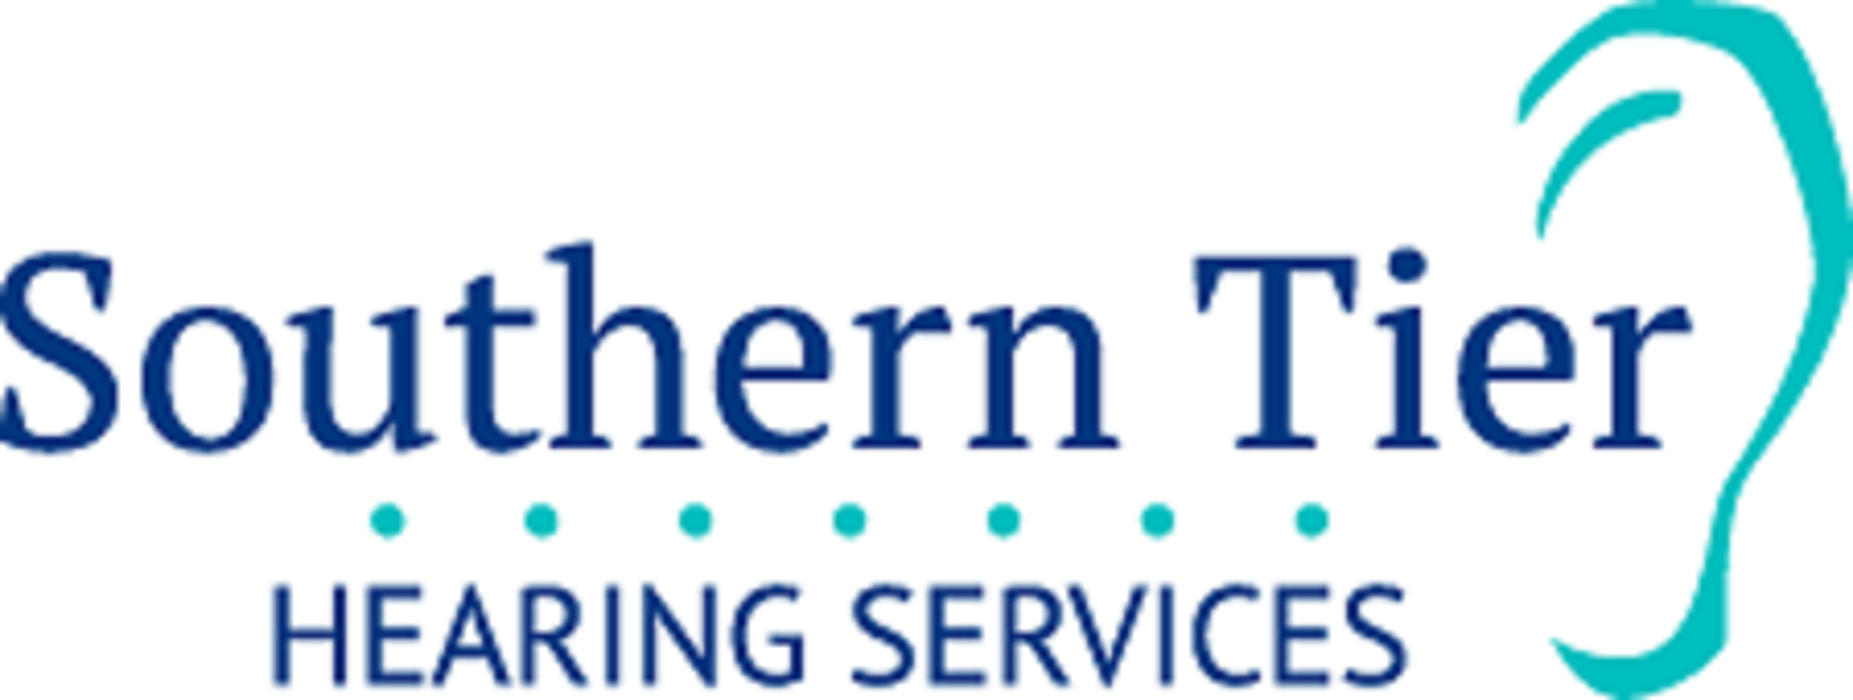 Southern Tier Hearing Services - Vestal, NY